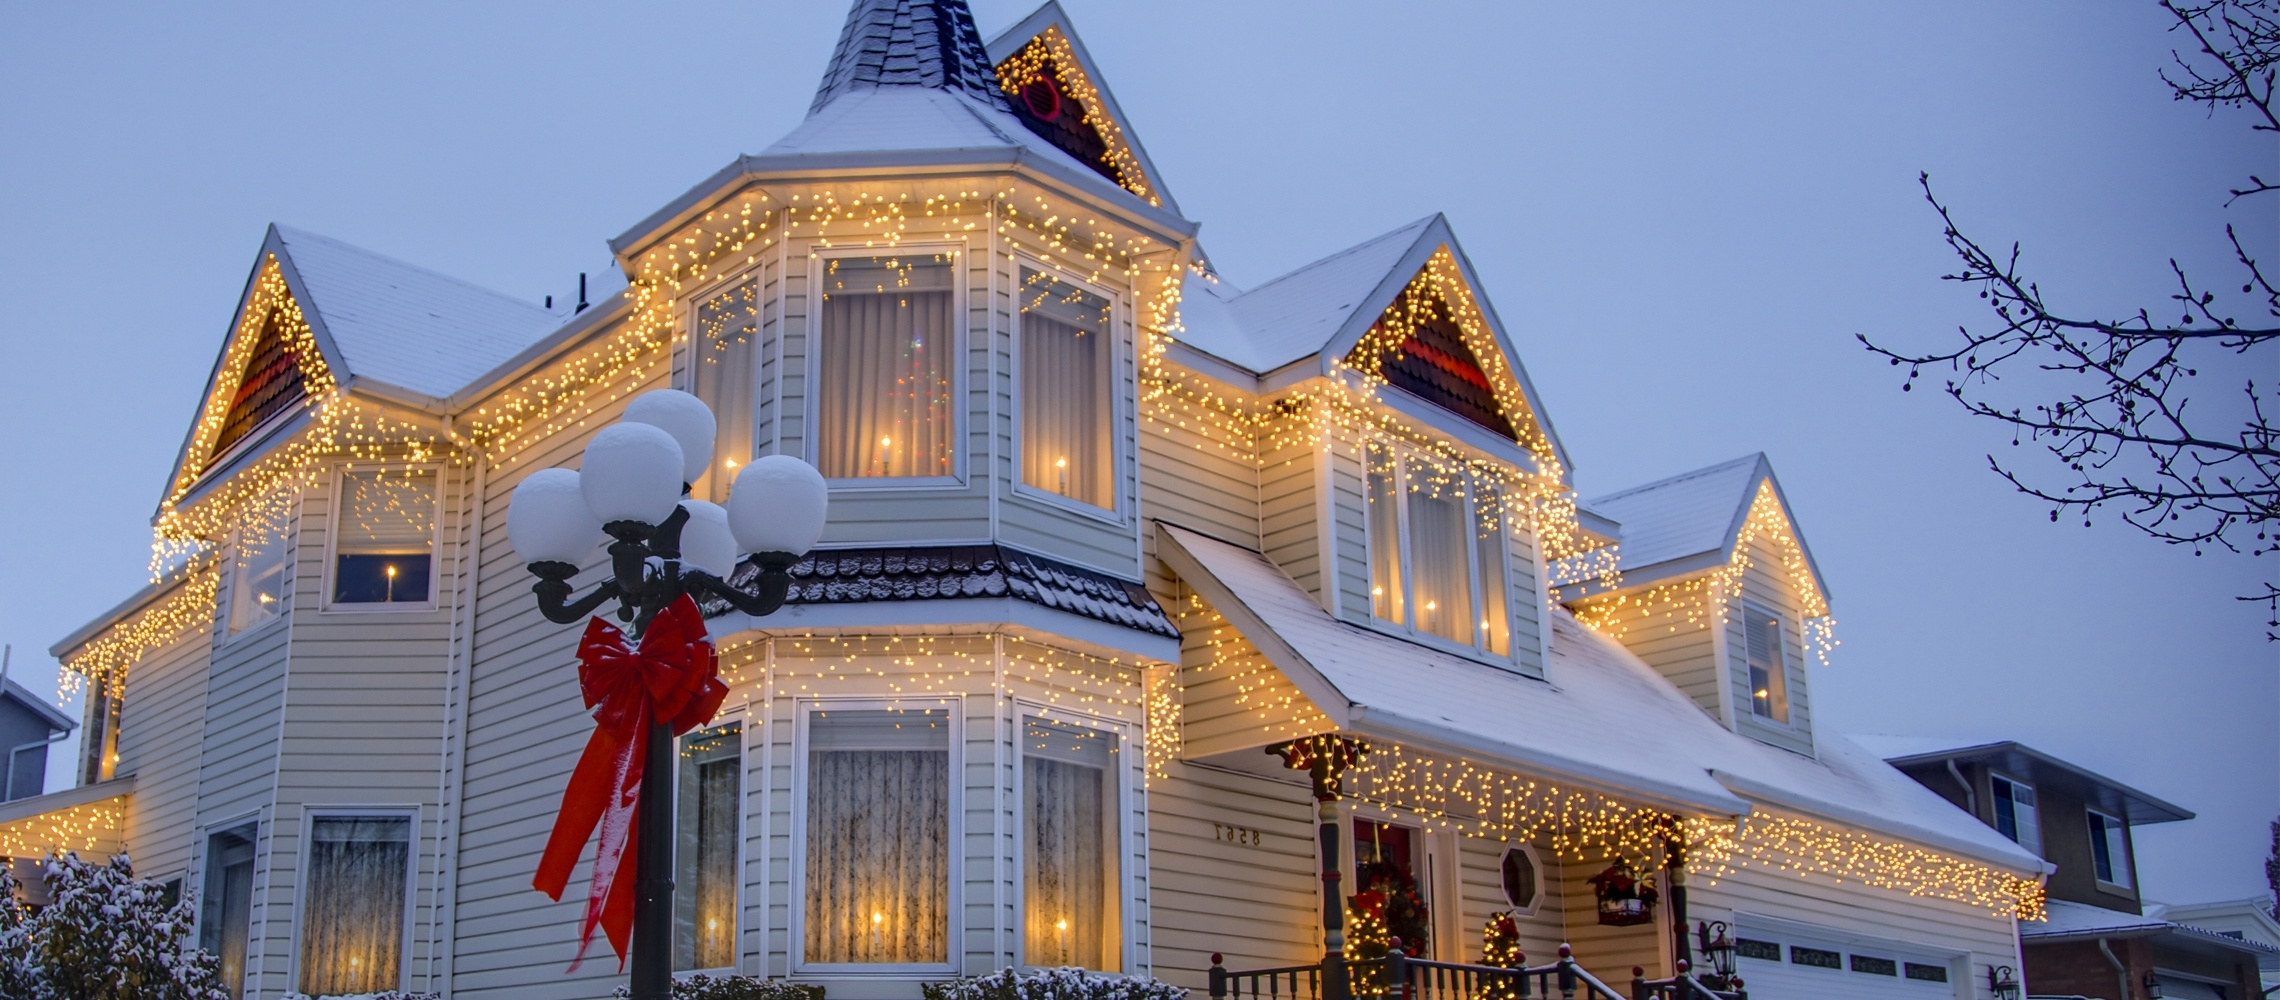 Favorite Outdoor Hanging Icicle Lights In Christmas Lights Ideas For The Roof (View 16 of 20)